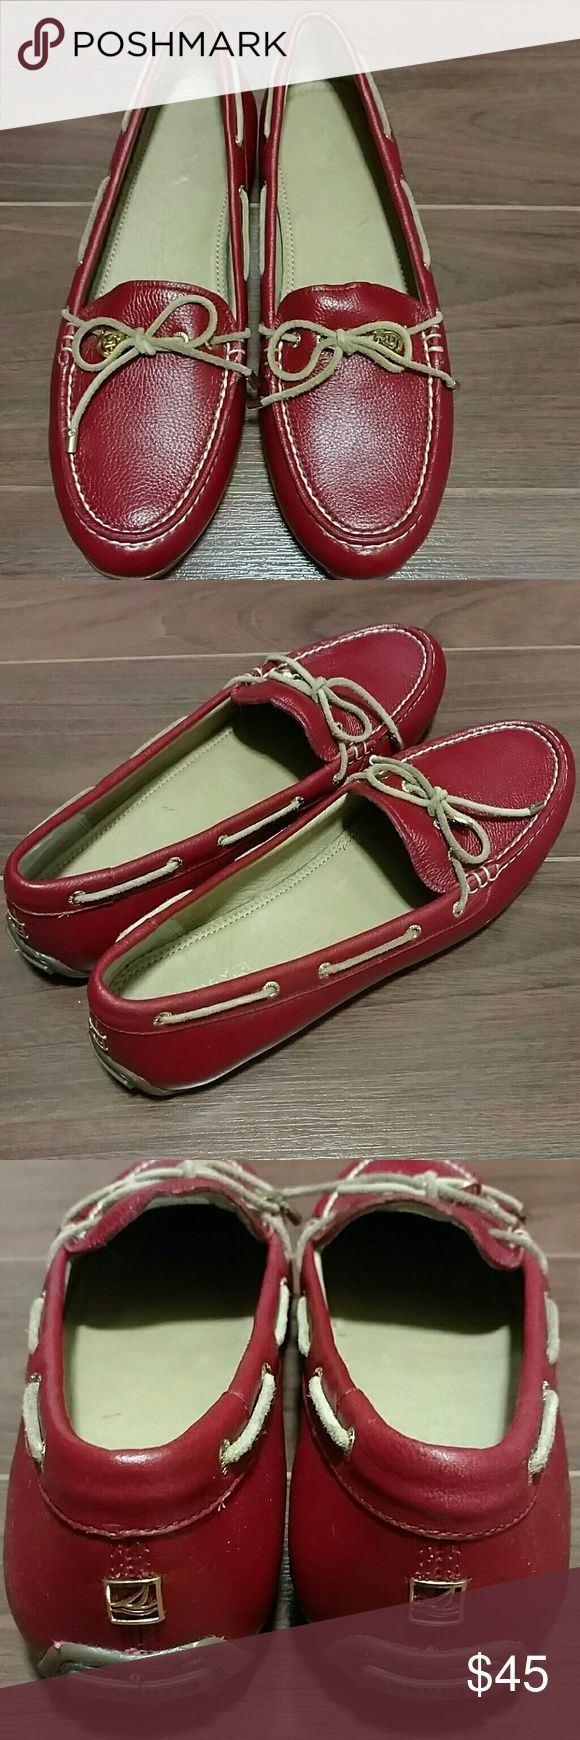 New Sperry red leather shoe Brand new, never worn.  Driving moc made of gorgeous red leather.  They are so cute! Sperry Top-Sider Shoes Flats & Loafers